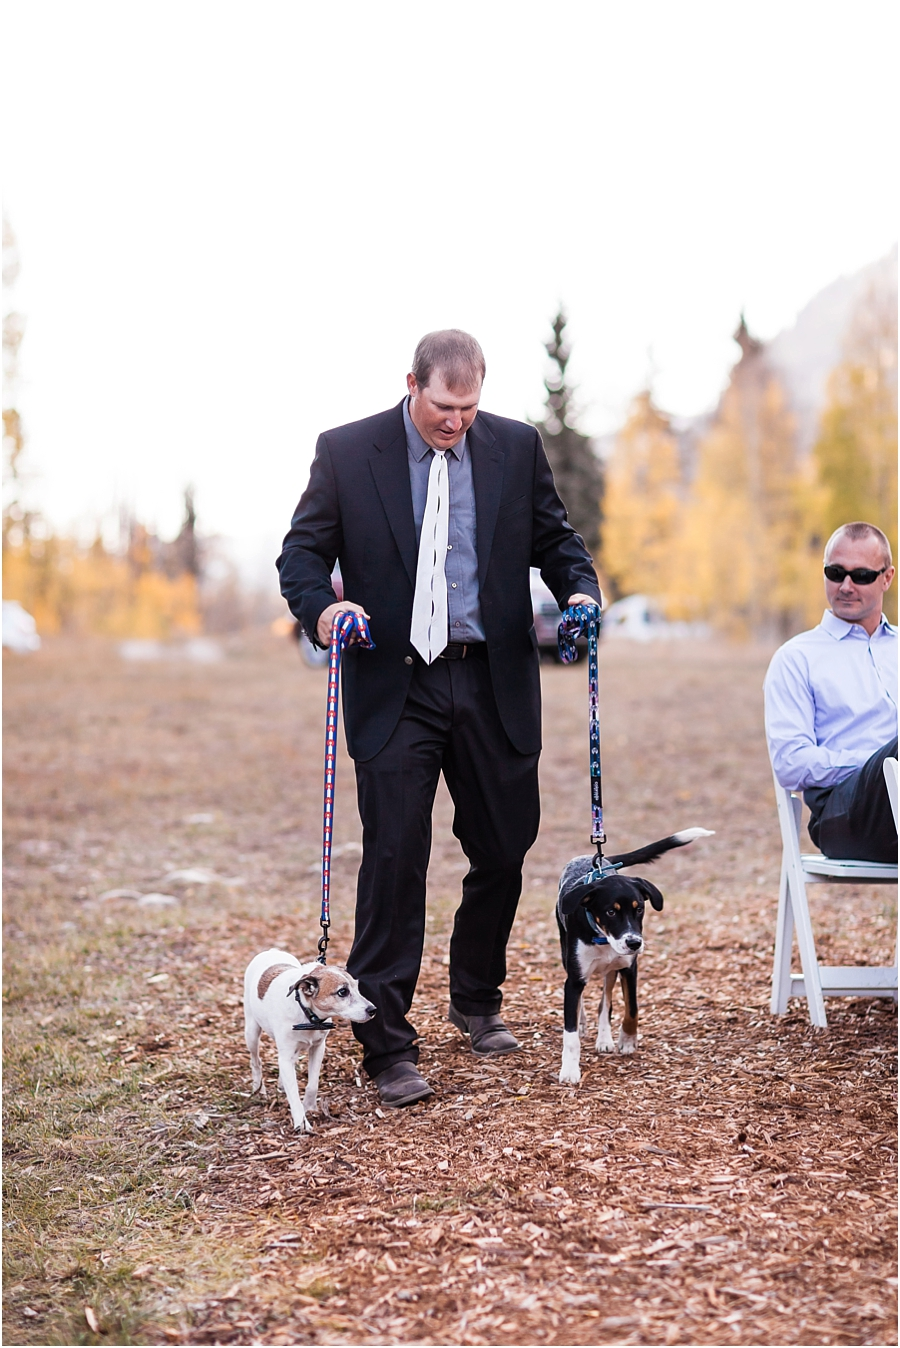 durango-colorado-dog-friendly-wedding-photographers.jpg